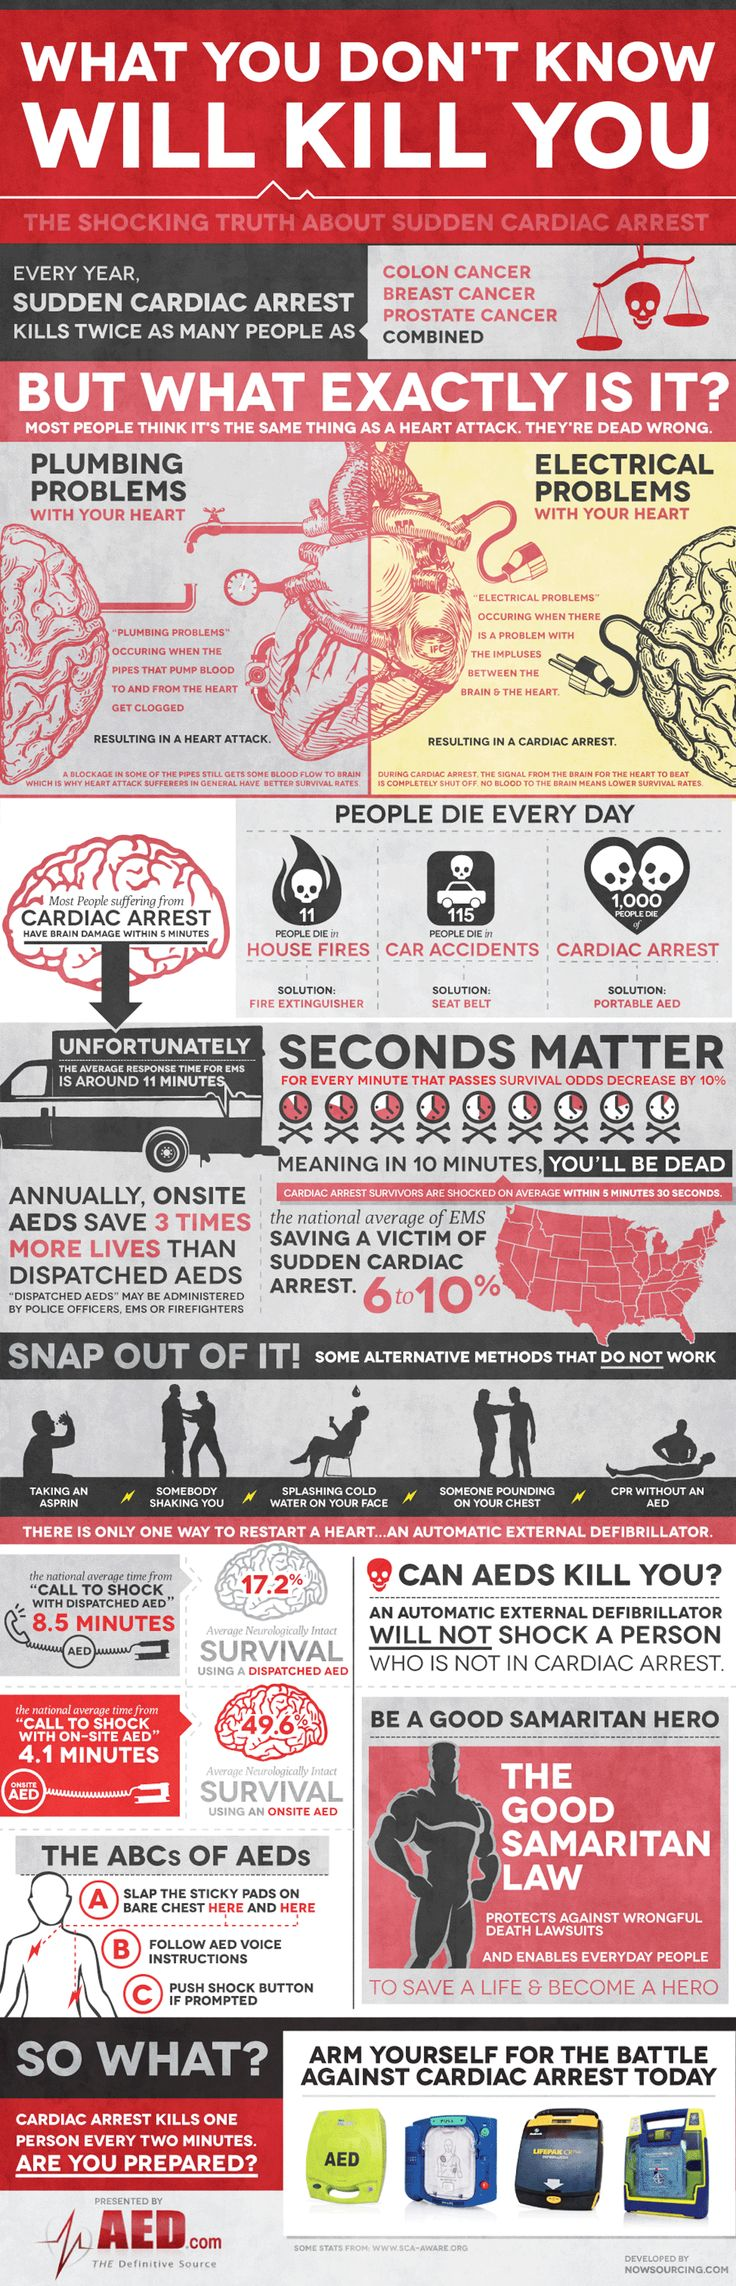 There's a difference between cardiac arrest and having a heart attack.  Knowing the difference and what to do might just save your life.